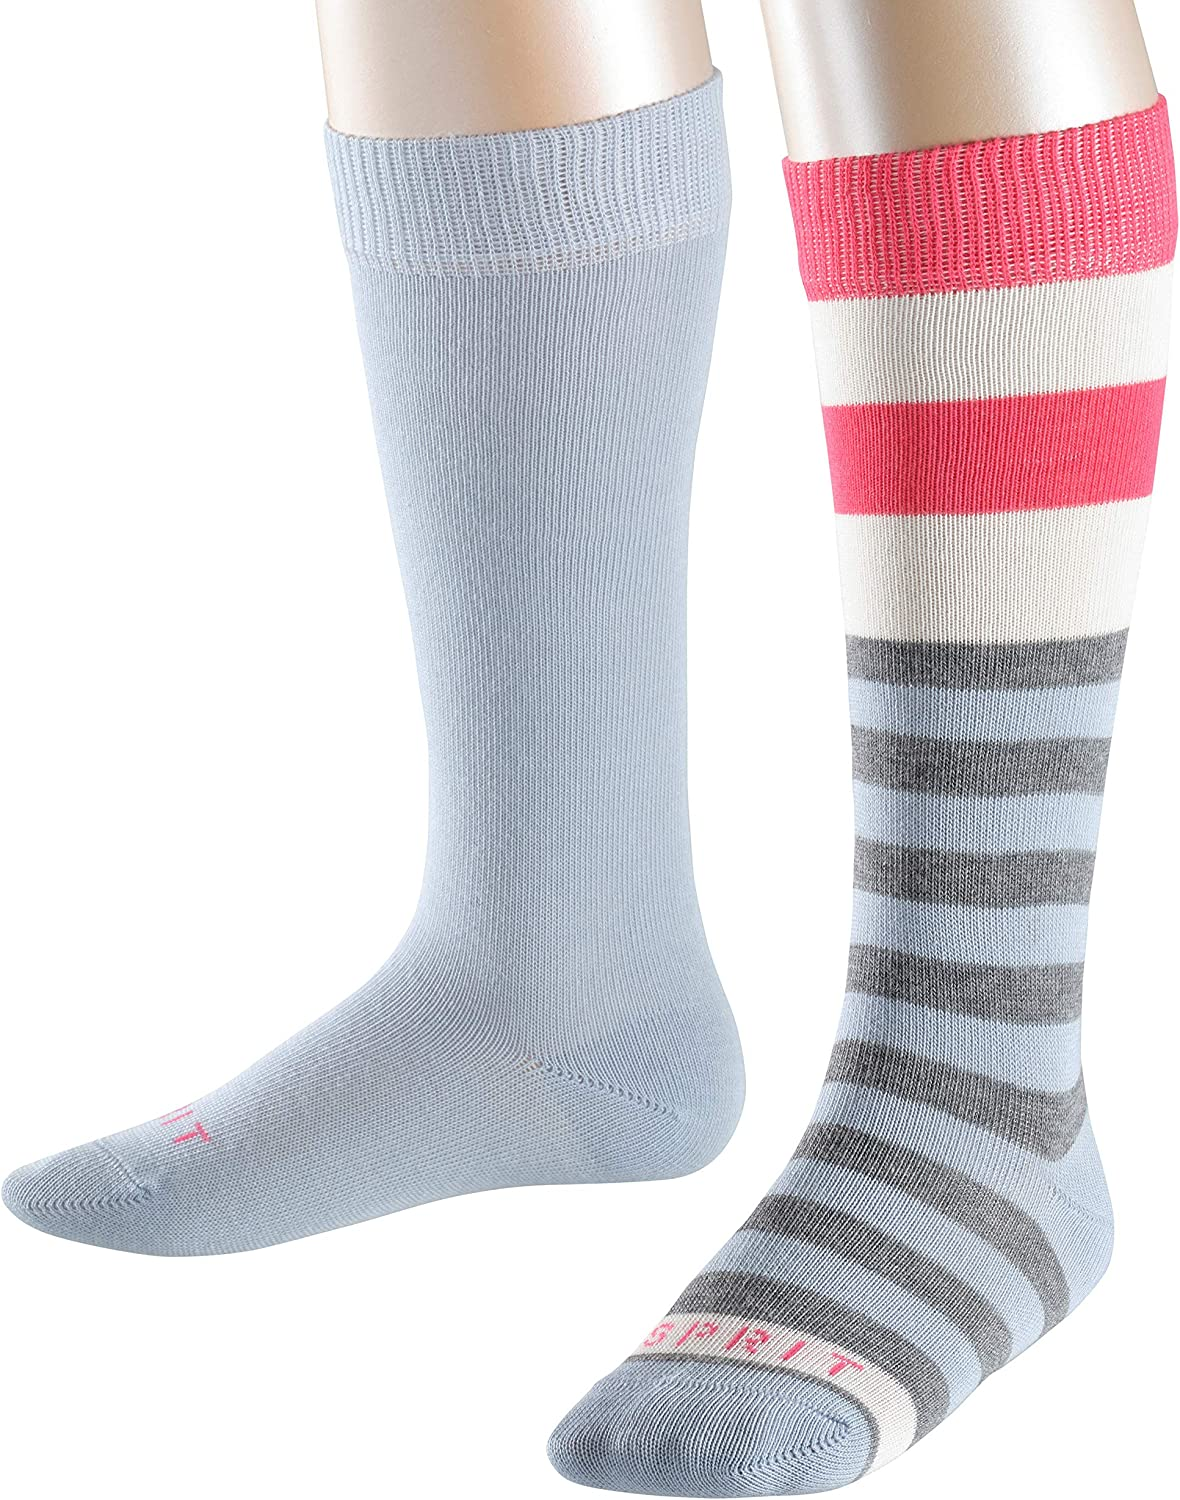 ideal for casual looks Sizes: 2 to 16 Years /Ι UK 6-8 /Ι EU 23-42 Skin friendly Multiple Colours ESPRIT Unisex Kids Block Stripe 2-Pack Knee-High Socks Pack of 2 82/% Cotton